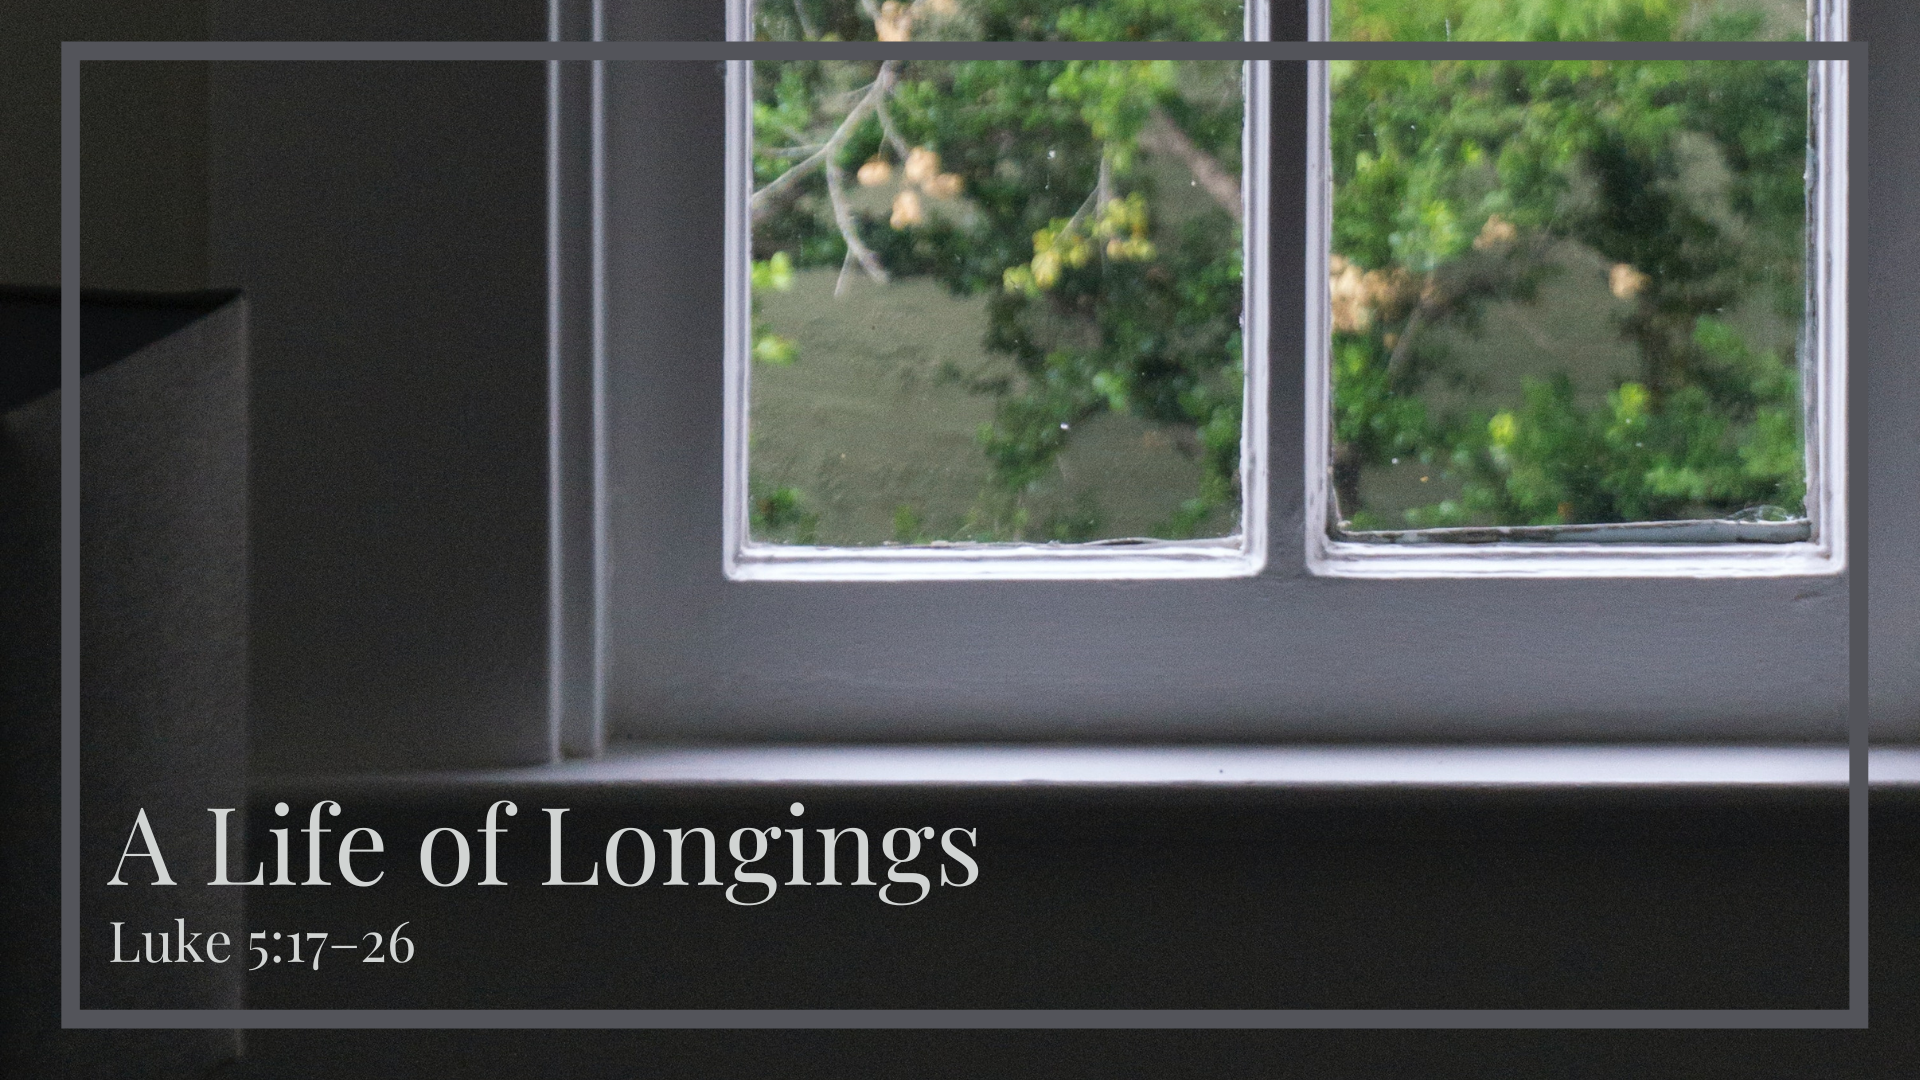 Copy of A Life of Longings